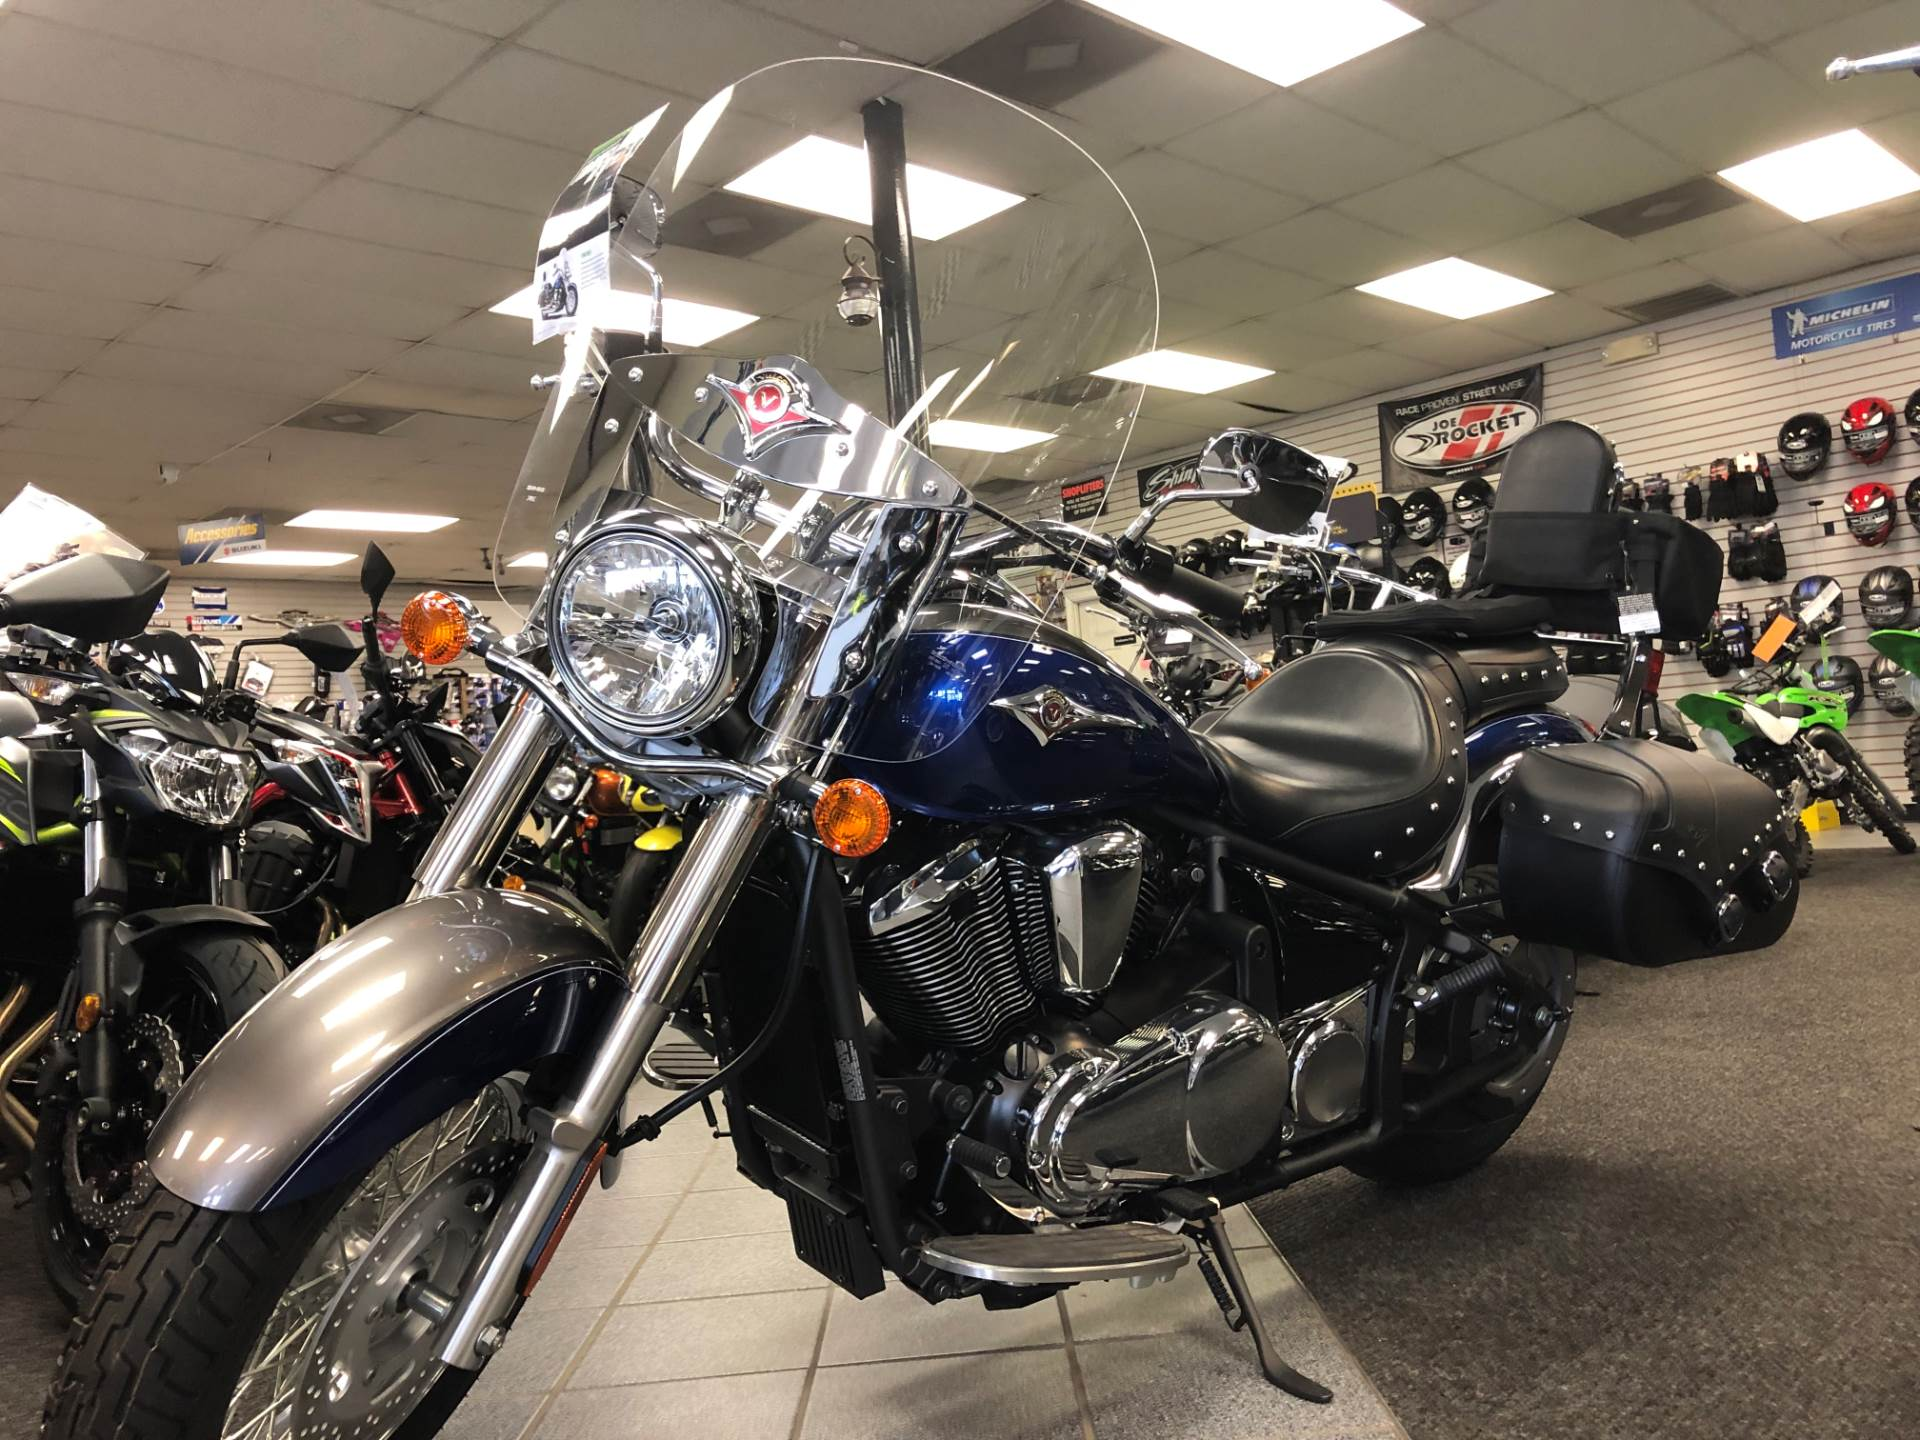 2019 Kawasaki Vulcan 900 Classic LT in Highland Springs, Virginia - Photo 1